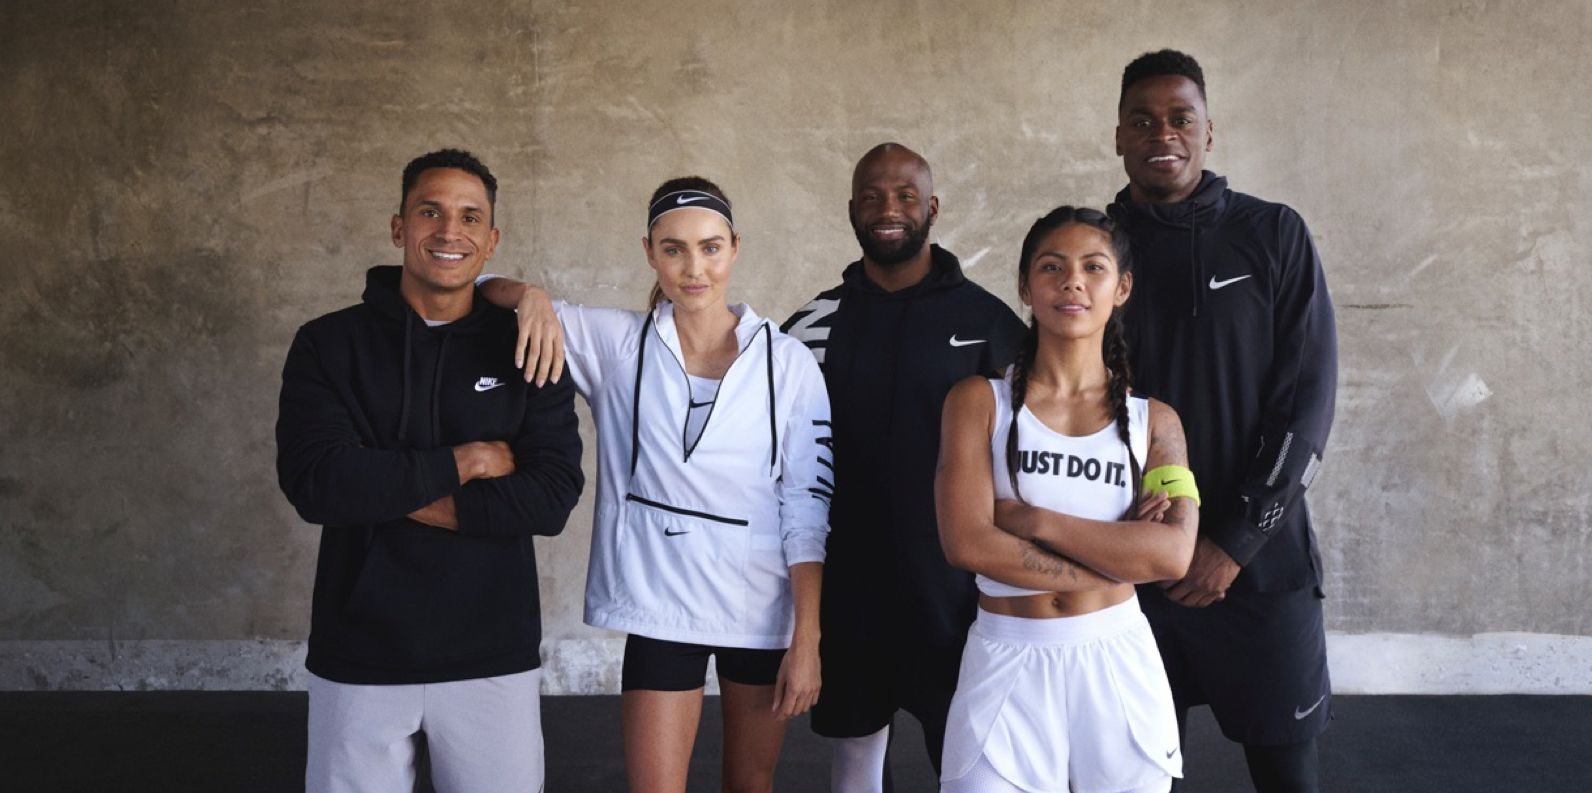 Who Are the Nike Master Trainers? | Nike Help